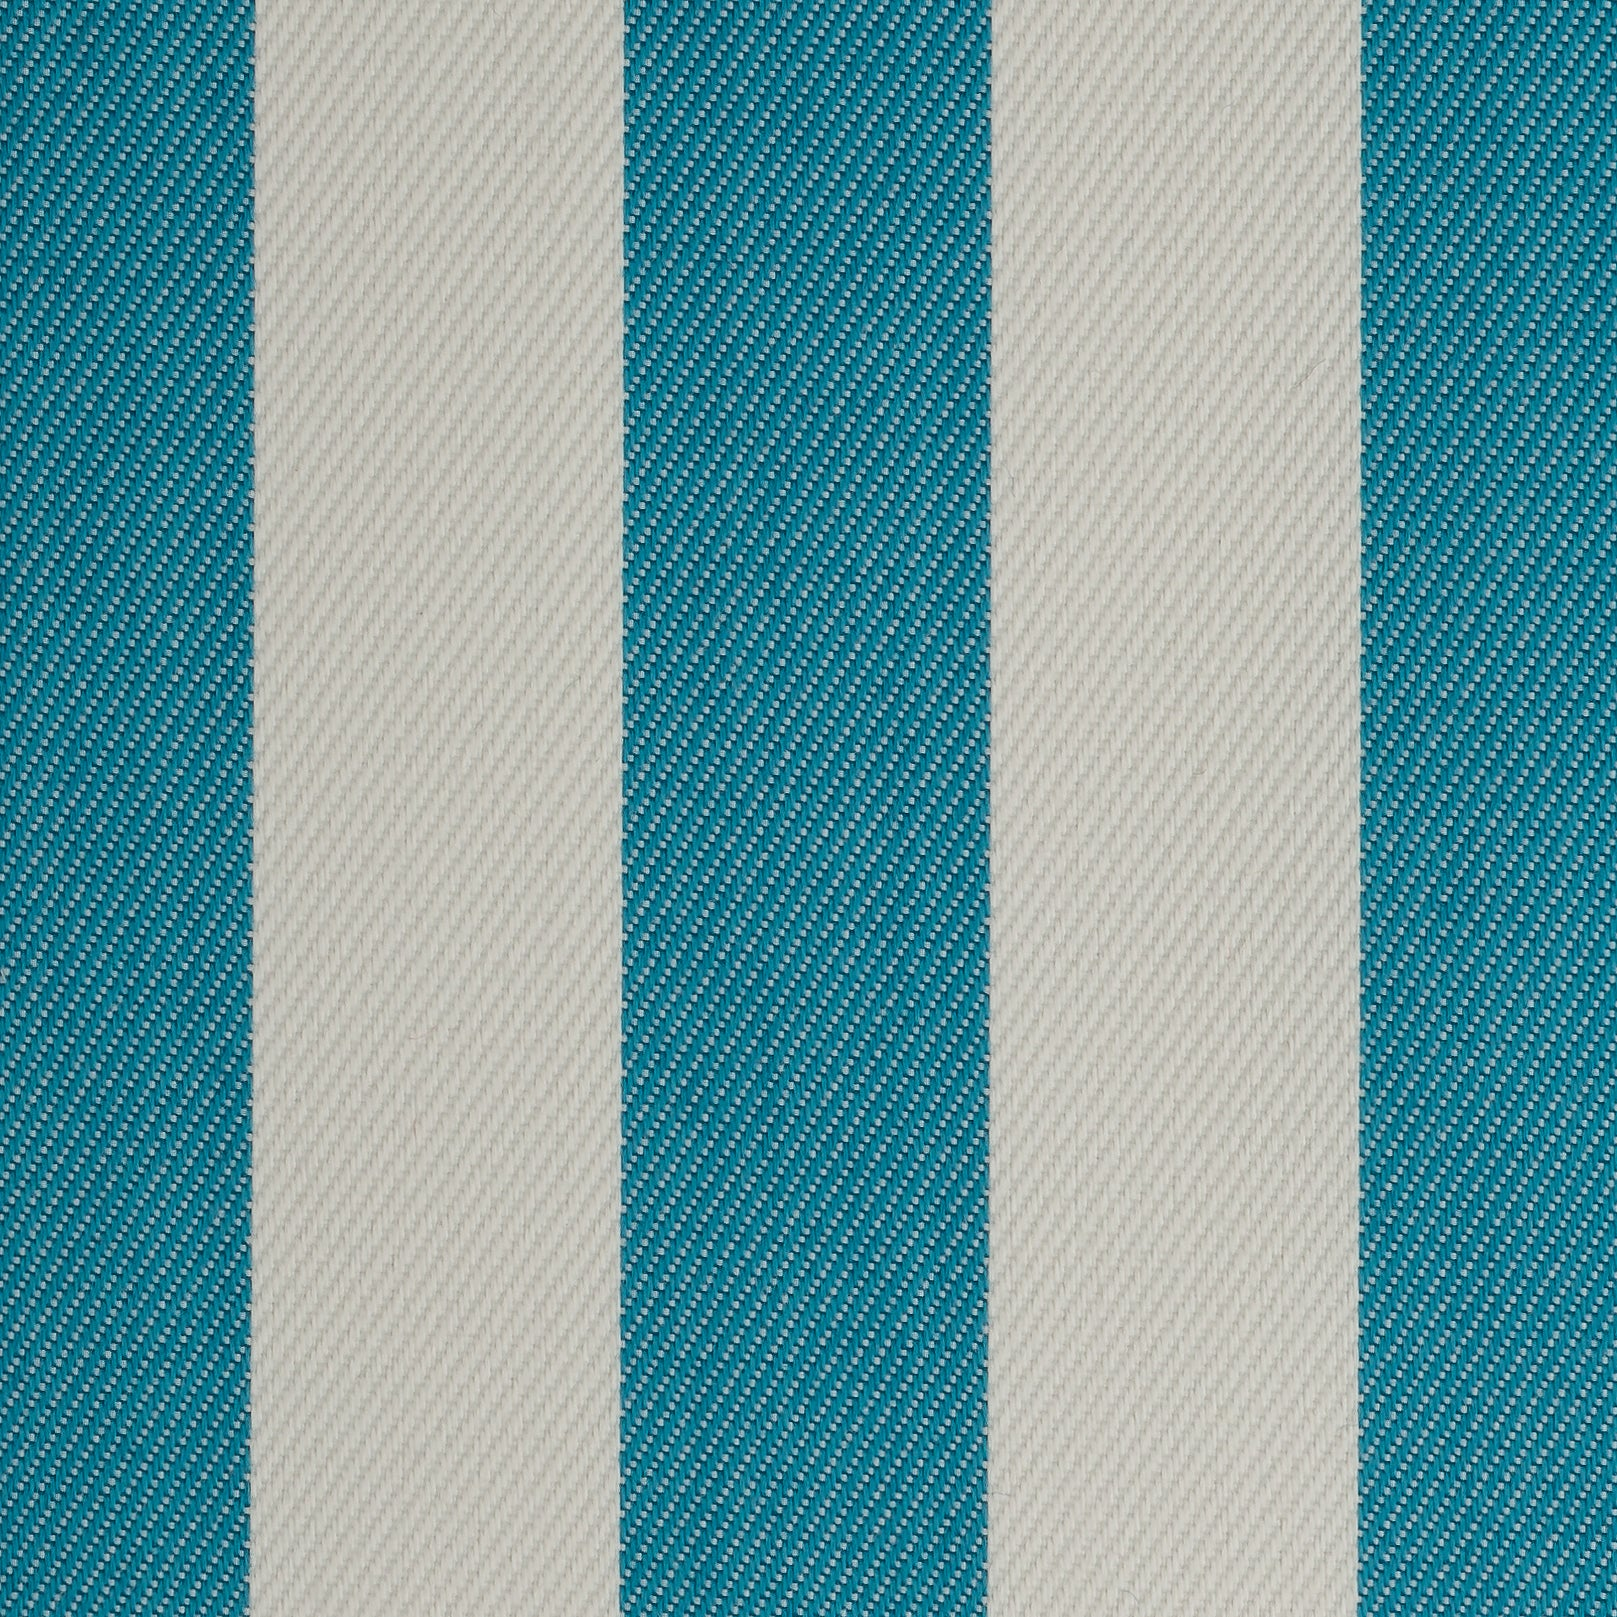 Sunset Stripes Turquoise